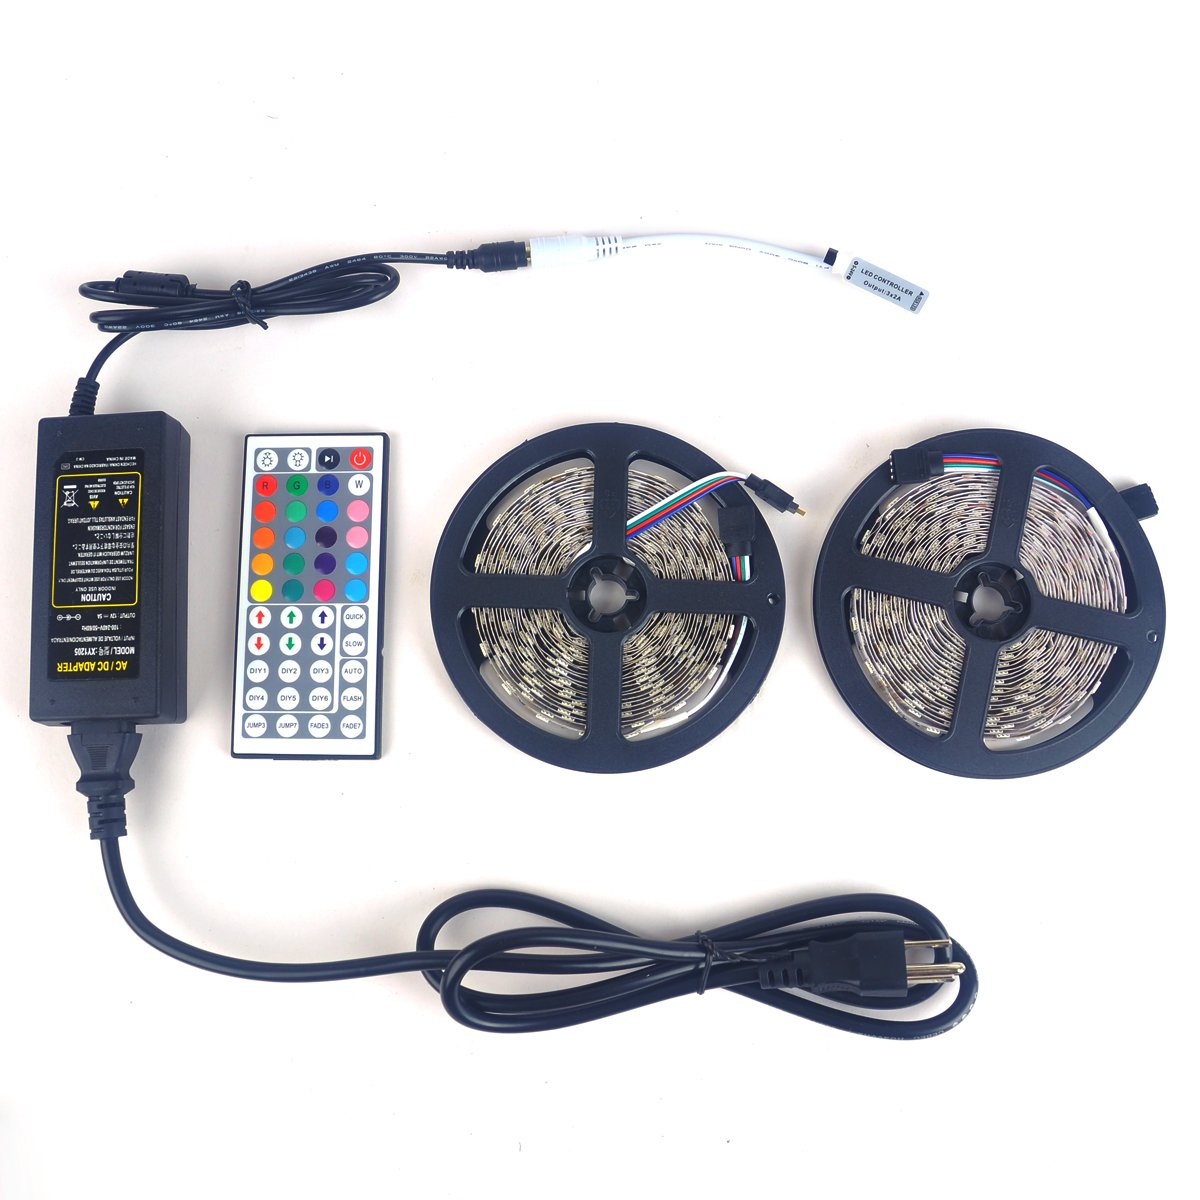 LTROP 2 Rolls 32.8ft LED Strip Lights Kit, None-waterproof Flexible SMD 5050 RGB 600 LED Light Strips with Mini 44 Key Remote and 12V 5V Power Adapter by LTROP